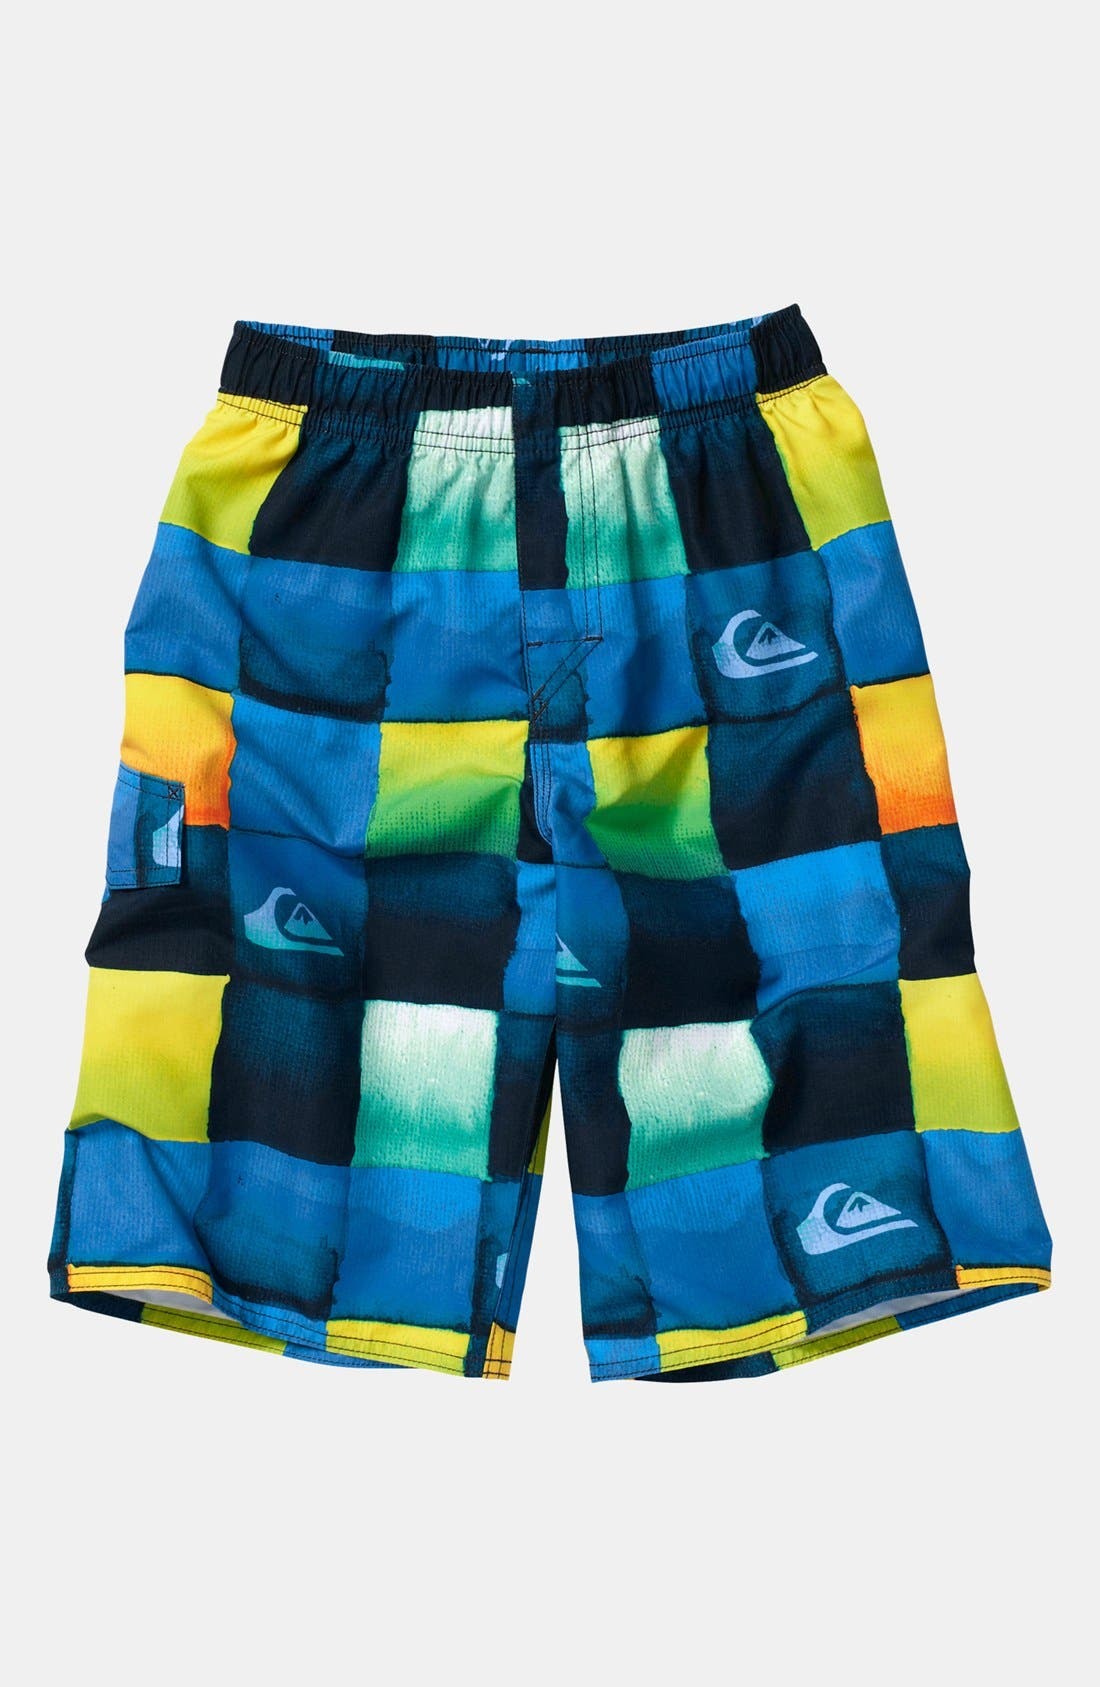 Alternate Image 1 Selected - Quiksilver 'Redemption' Volley Shorts (Big Boys)